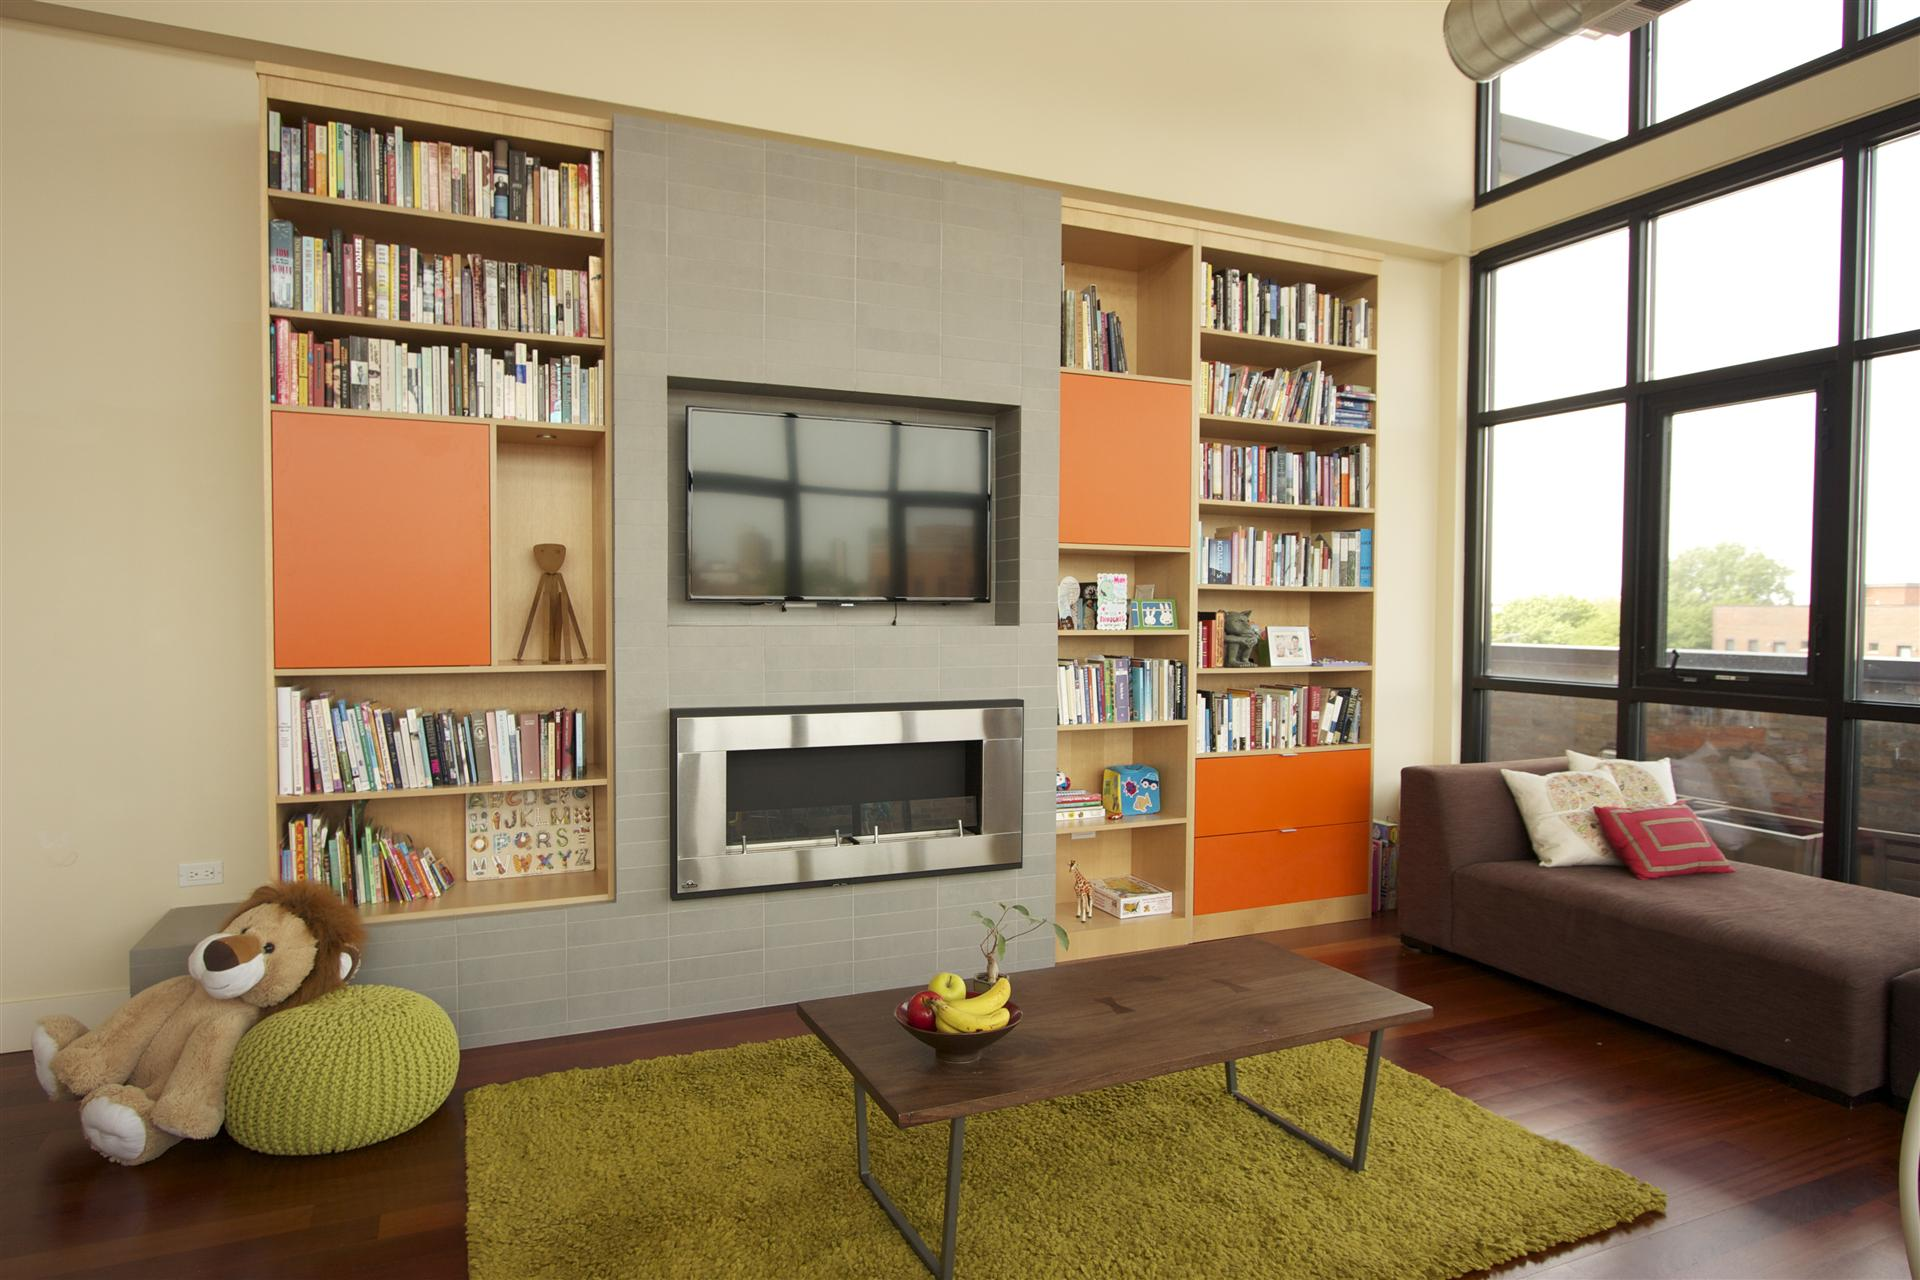 fireplace design chicago  built ins  and custom cabinets Toy Room Shelving Using 2X4 toy room shelving unit